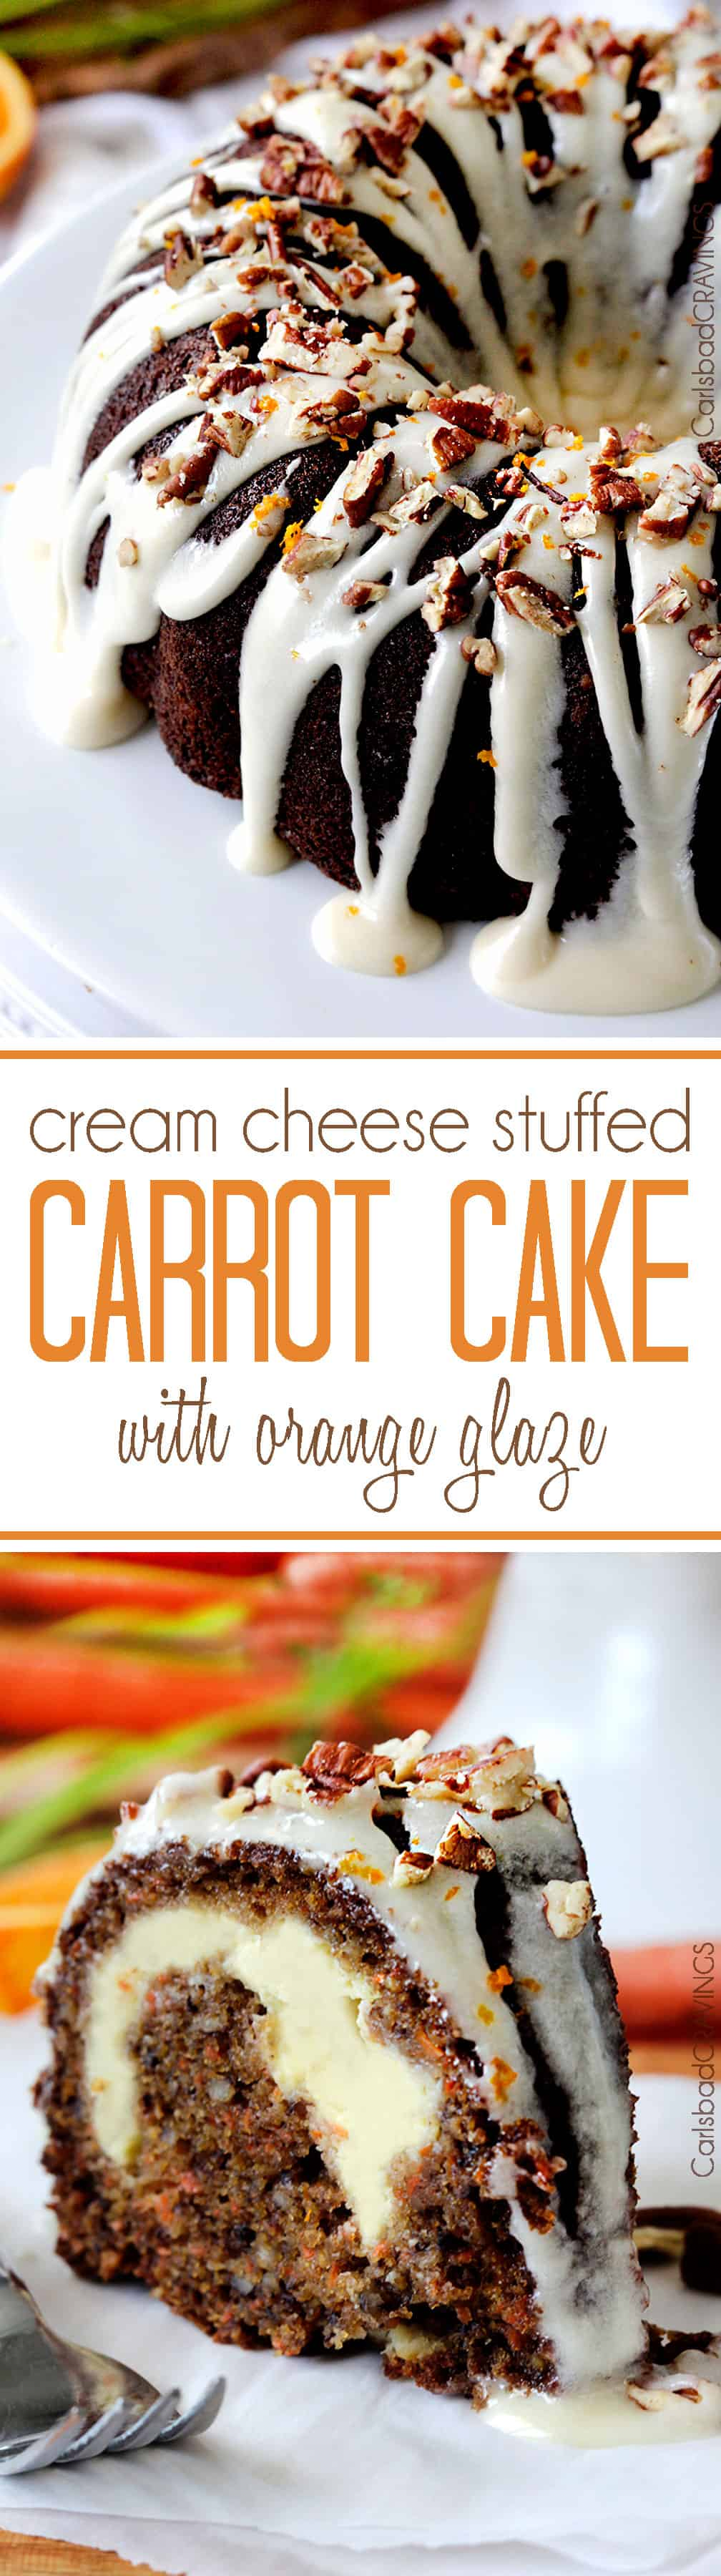 Super moist, spiced Carrot Cake stuffed with sweet Cream Cheese Filling and drizzled with sweet and tangy Orange Cream Cheese Glaze that will have you drinking it straight from the bowl.